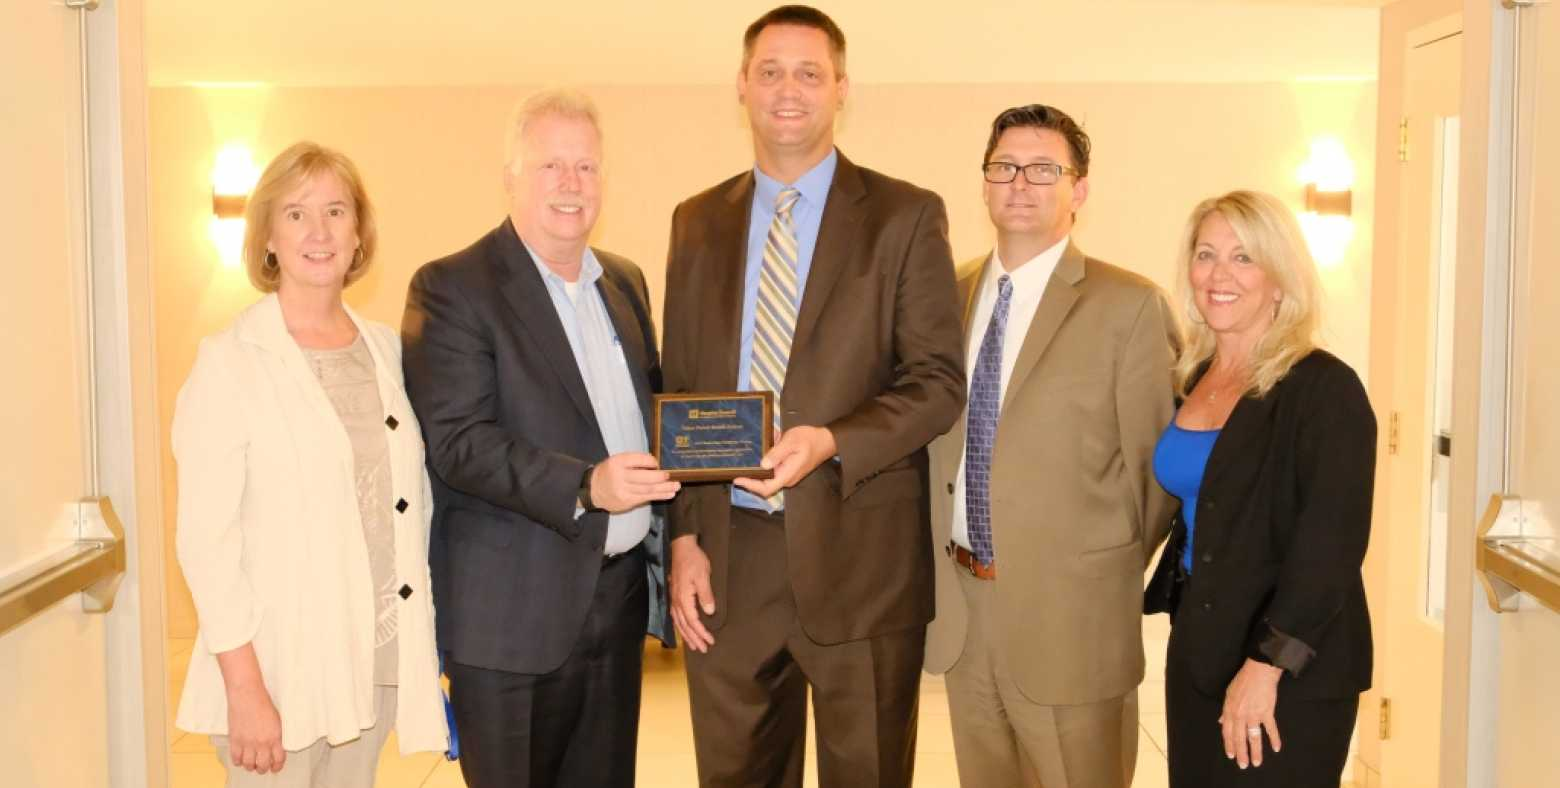 Receiving the Hospital Council of Northern & Central California: 2016 Innovation Challenge Award, Judy Newland, TFHS Chief Operating Officer; Harry Weis, TFHS CEO; Brian Jenson, Hospital Council of Northern & Central California Regional VP; Jake Dorst, TFHS Chief Information and Innovation Officer; Karen Baffone, TFHS Chief Nursing Officer/Director of Population Health